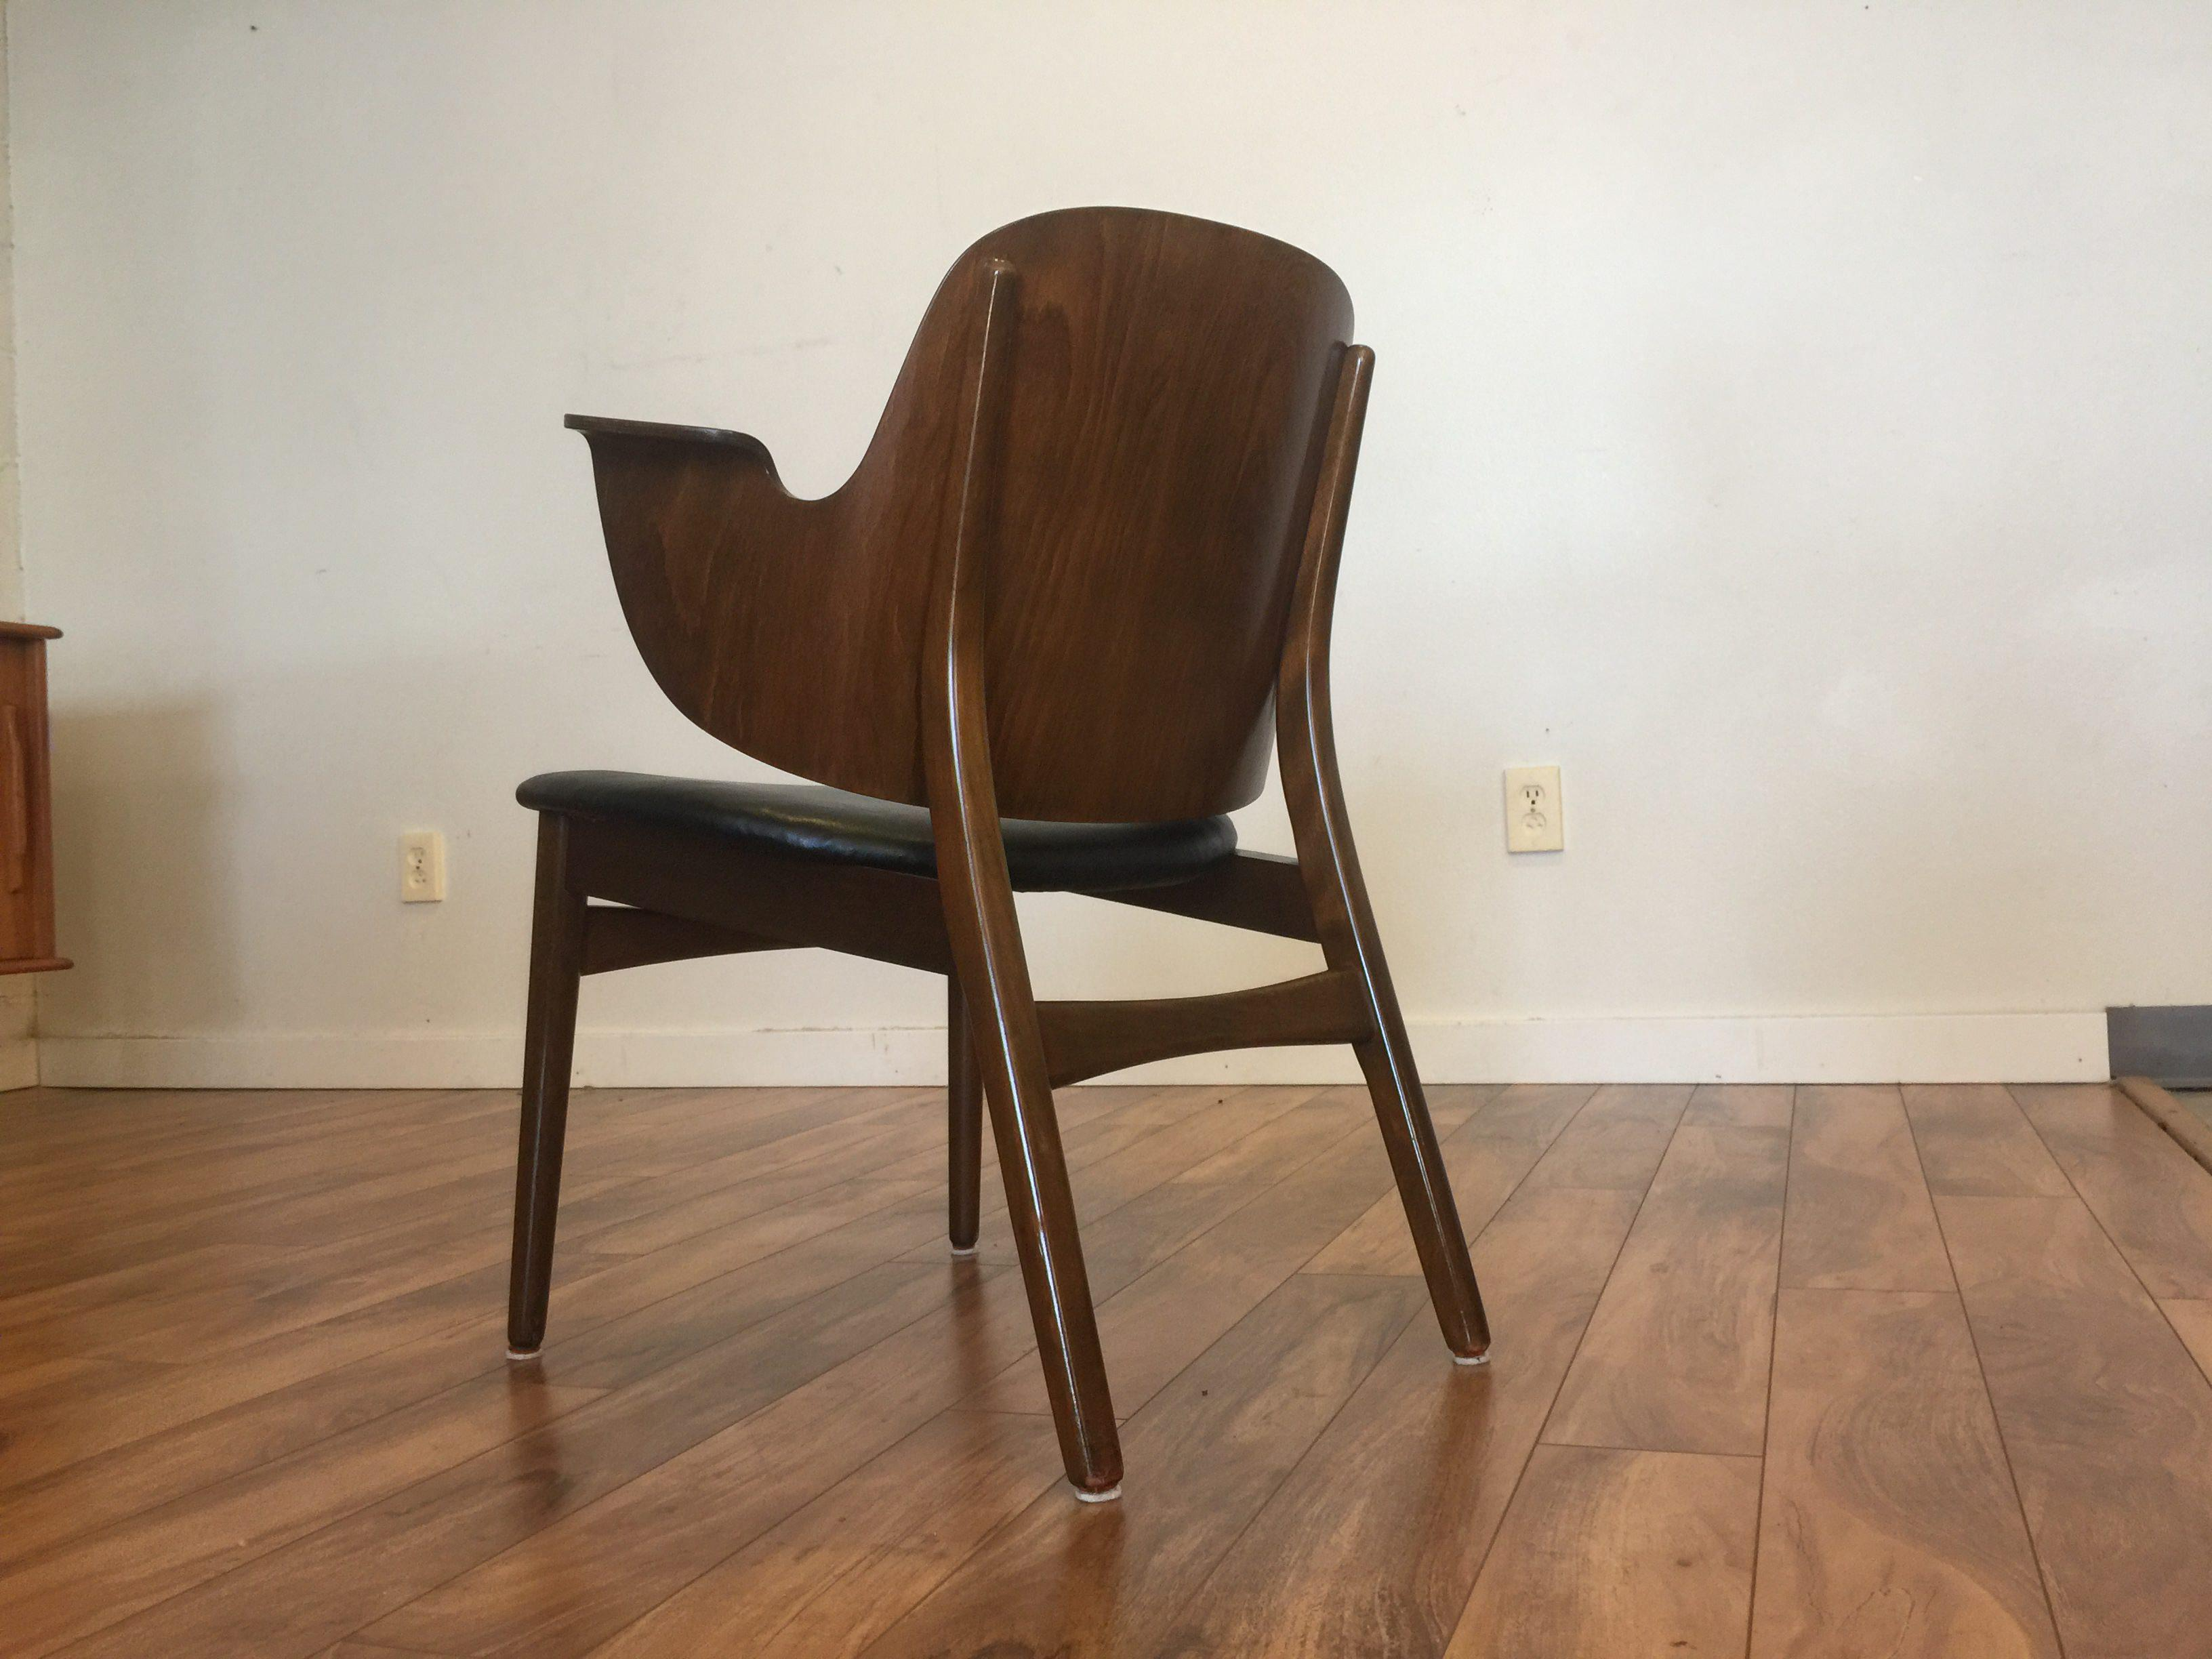 Hans Olsen For Bramin Møbler Bentwood Chair   Image 5 Of 11